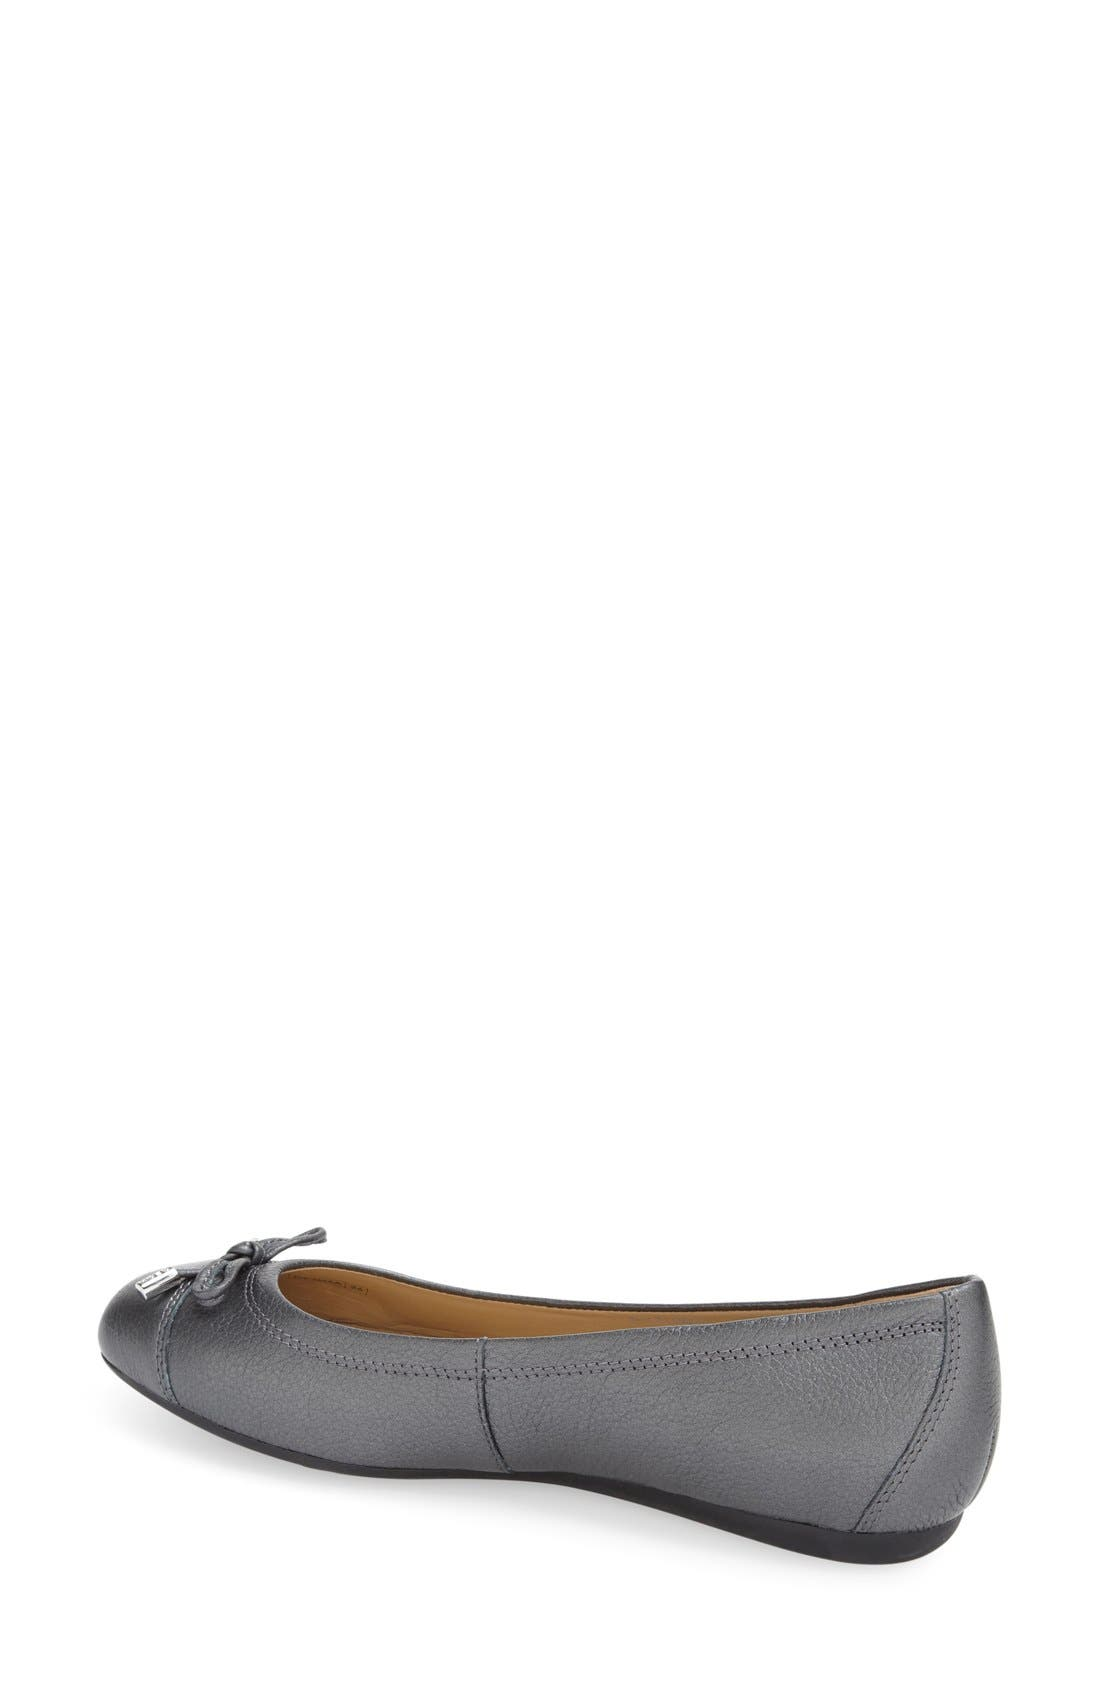 'Lola 16' Cap Toe Ballet Flat,                             Alternate thumbnail 6, color,